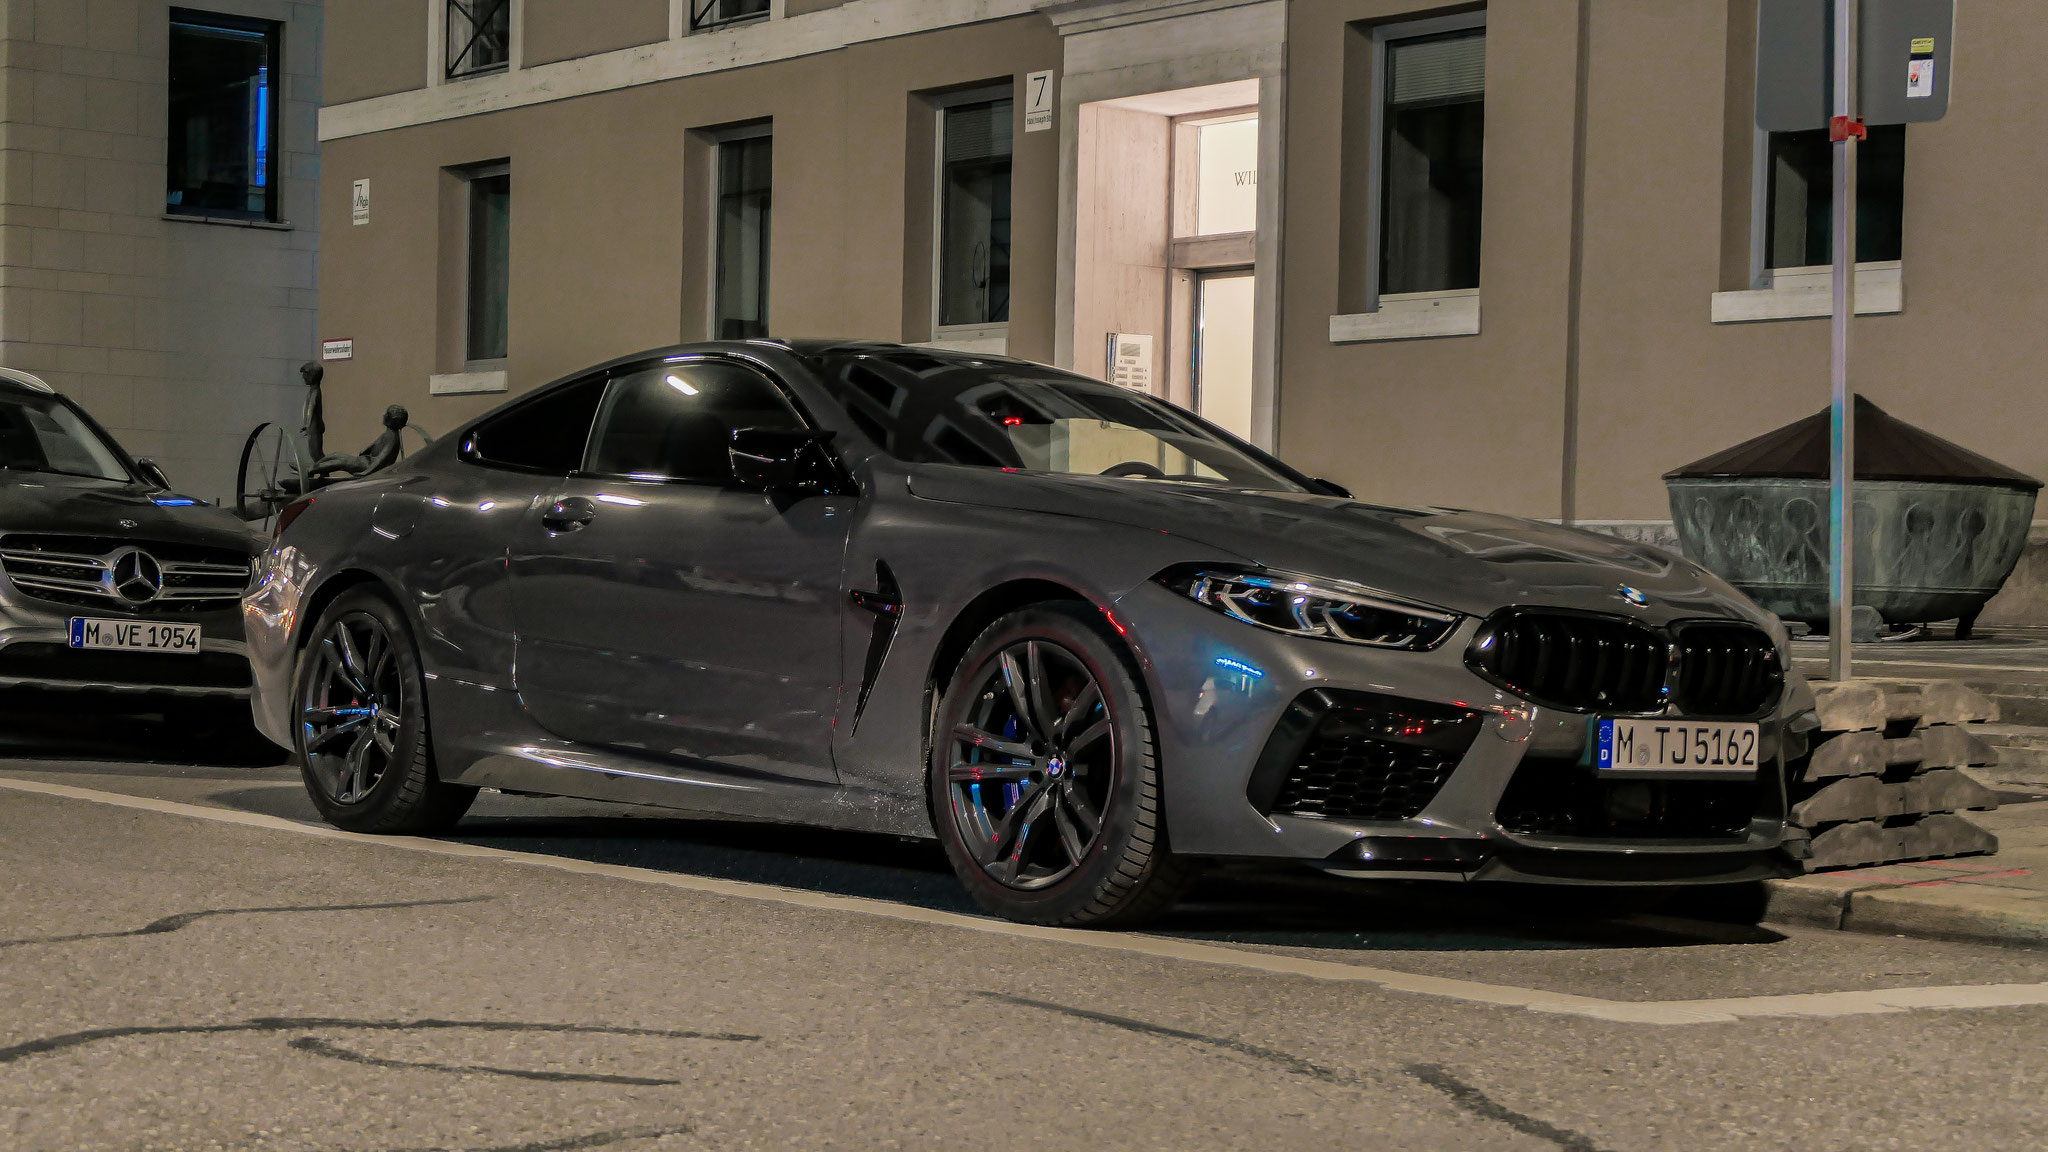 BMW M8 Competition - M-TJ-5162